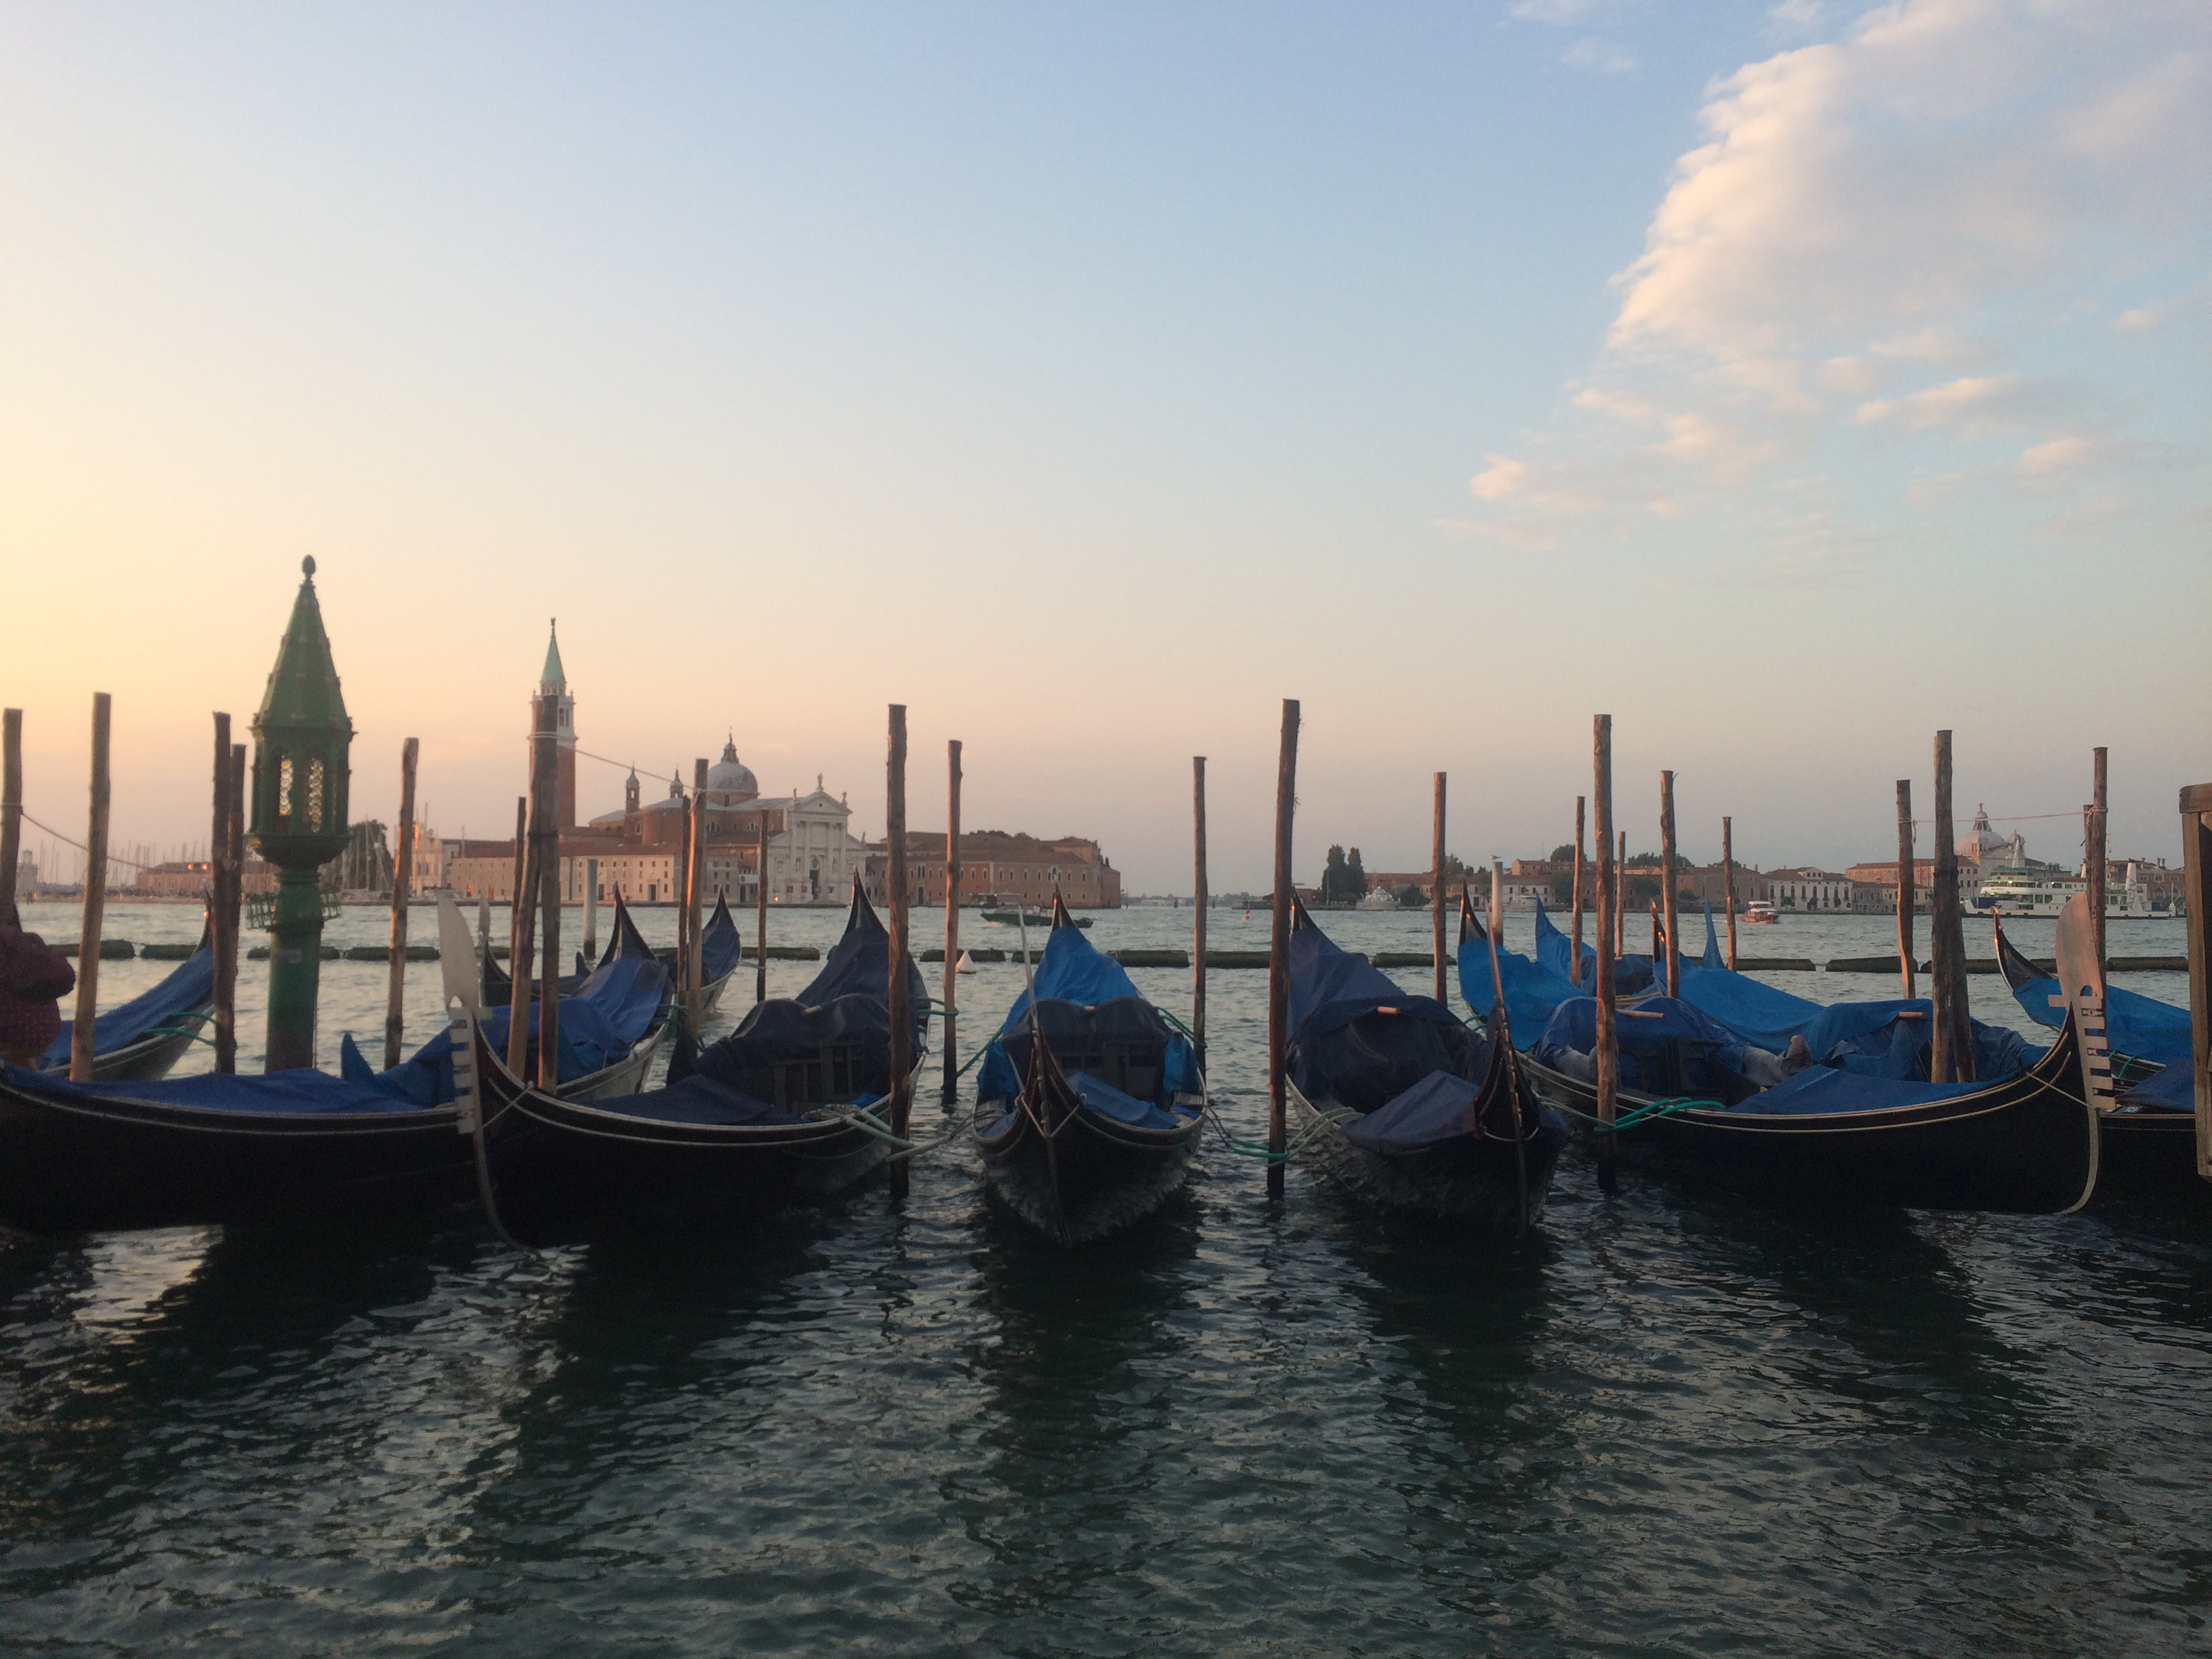 Gondolas for everyone